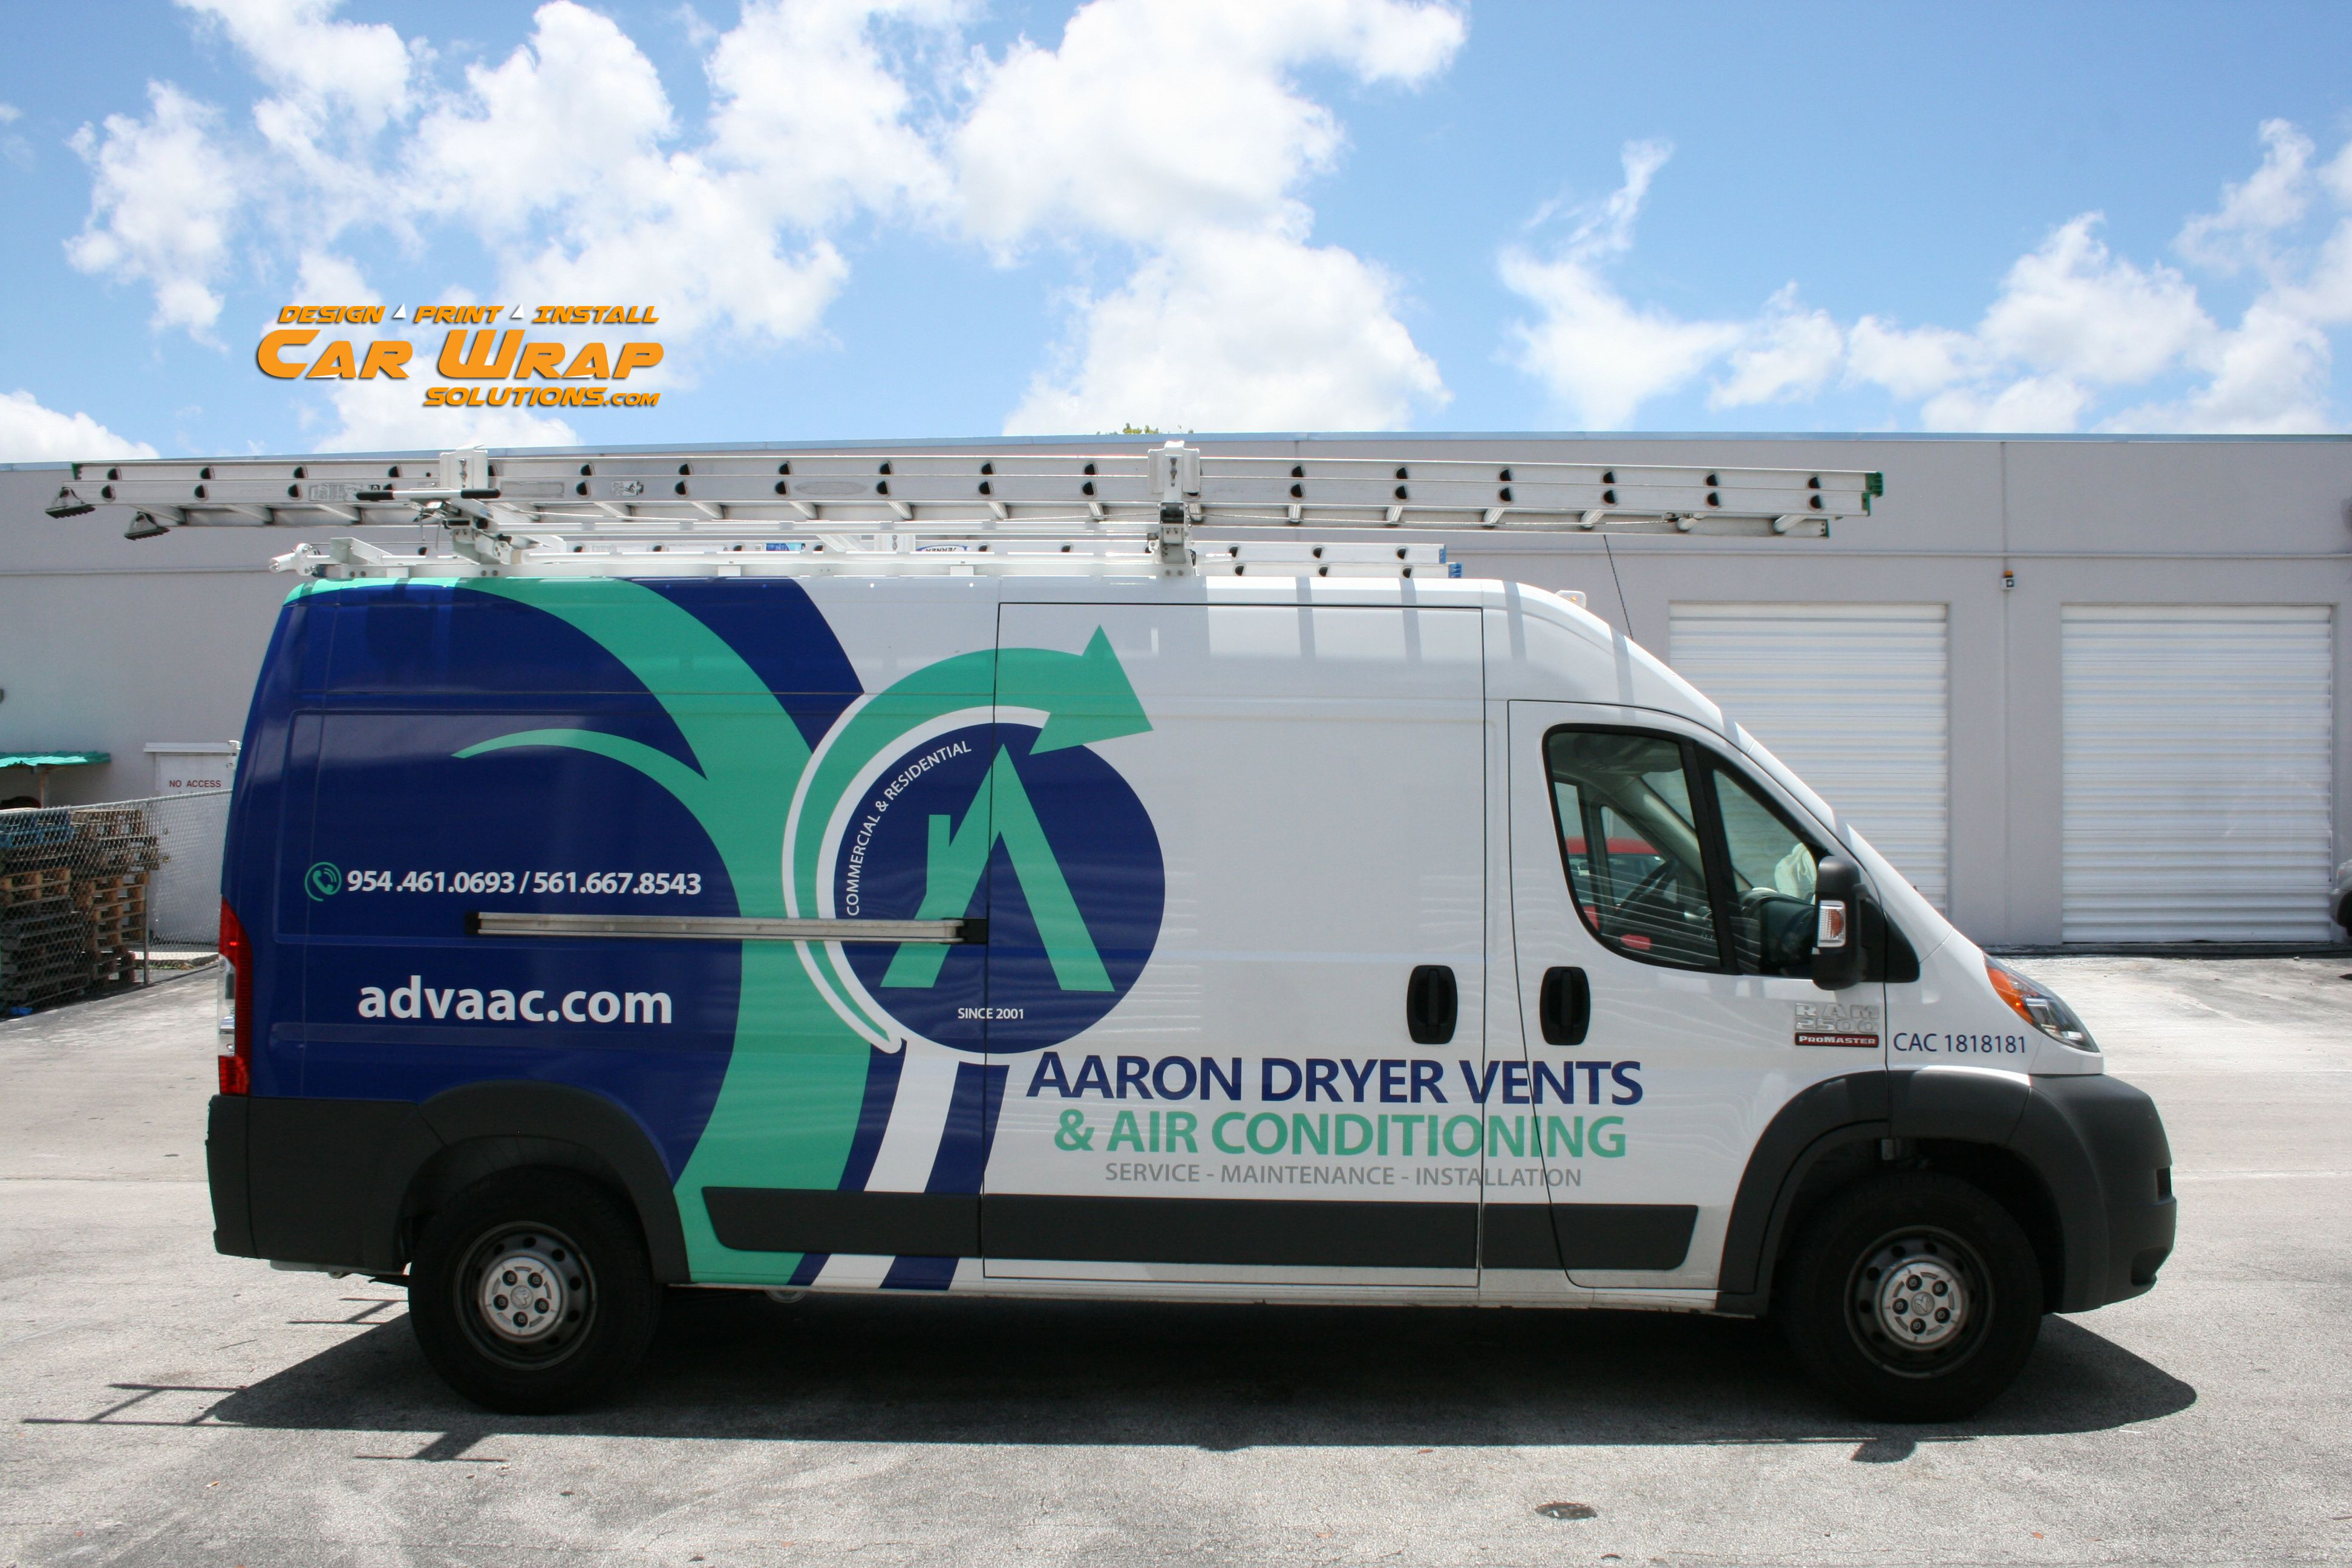 Ram promaster van commercial air conditioning graphics lettering davie florida http carwrapsolutions